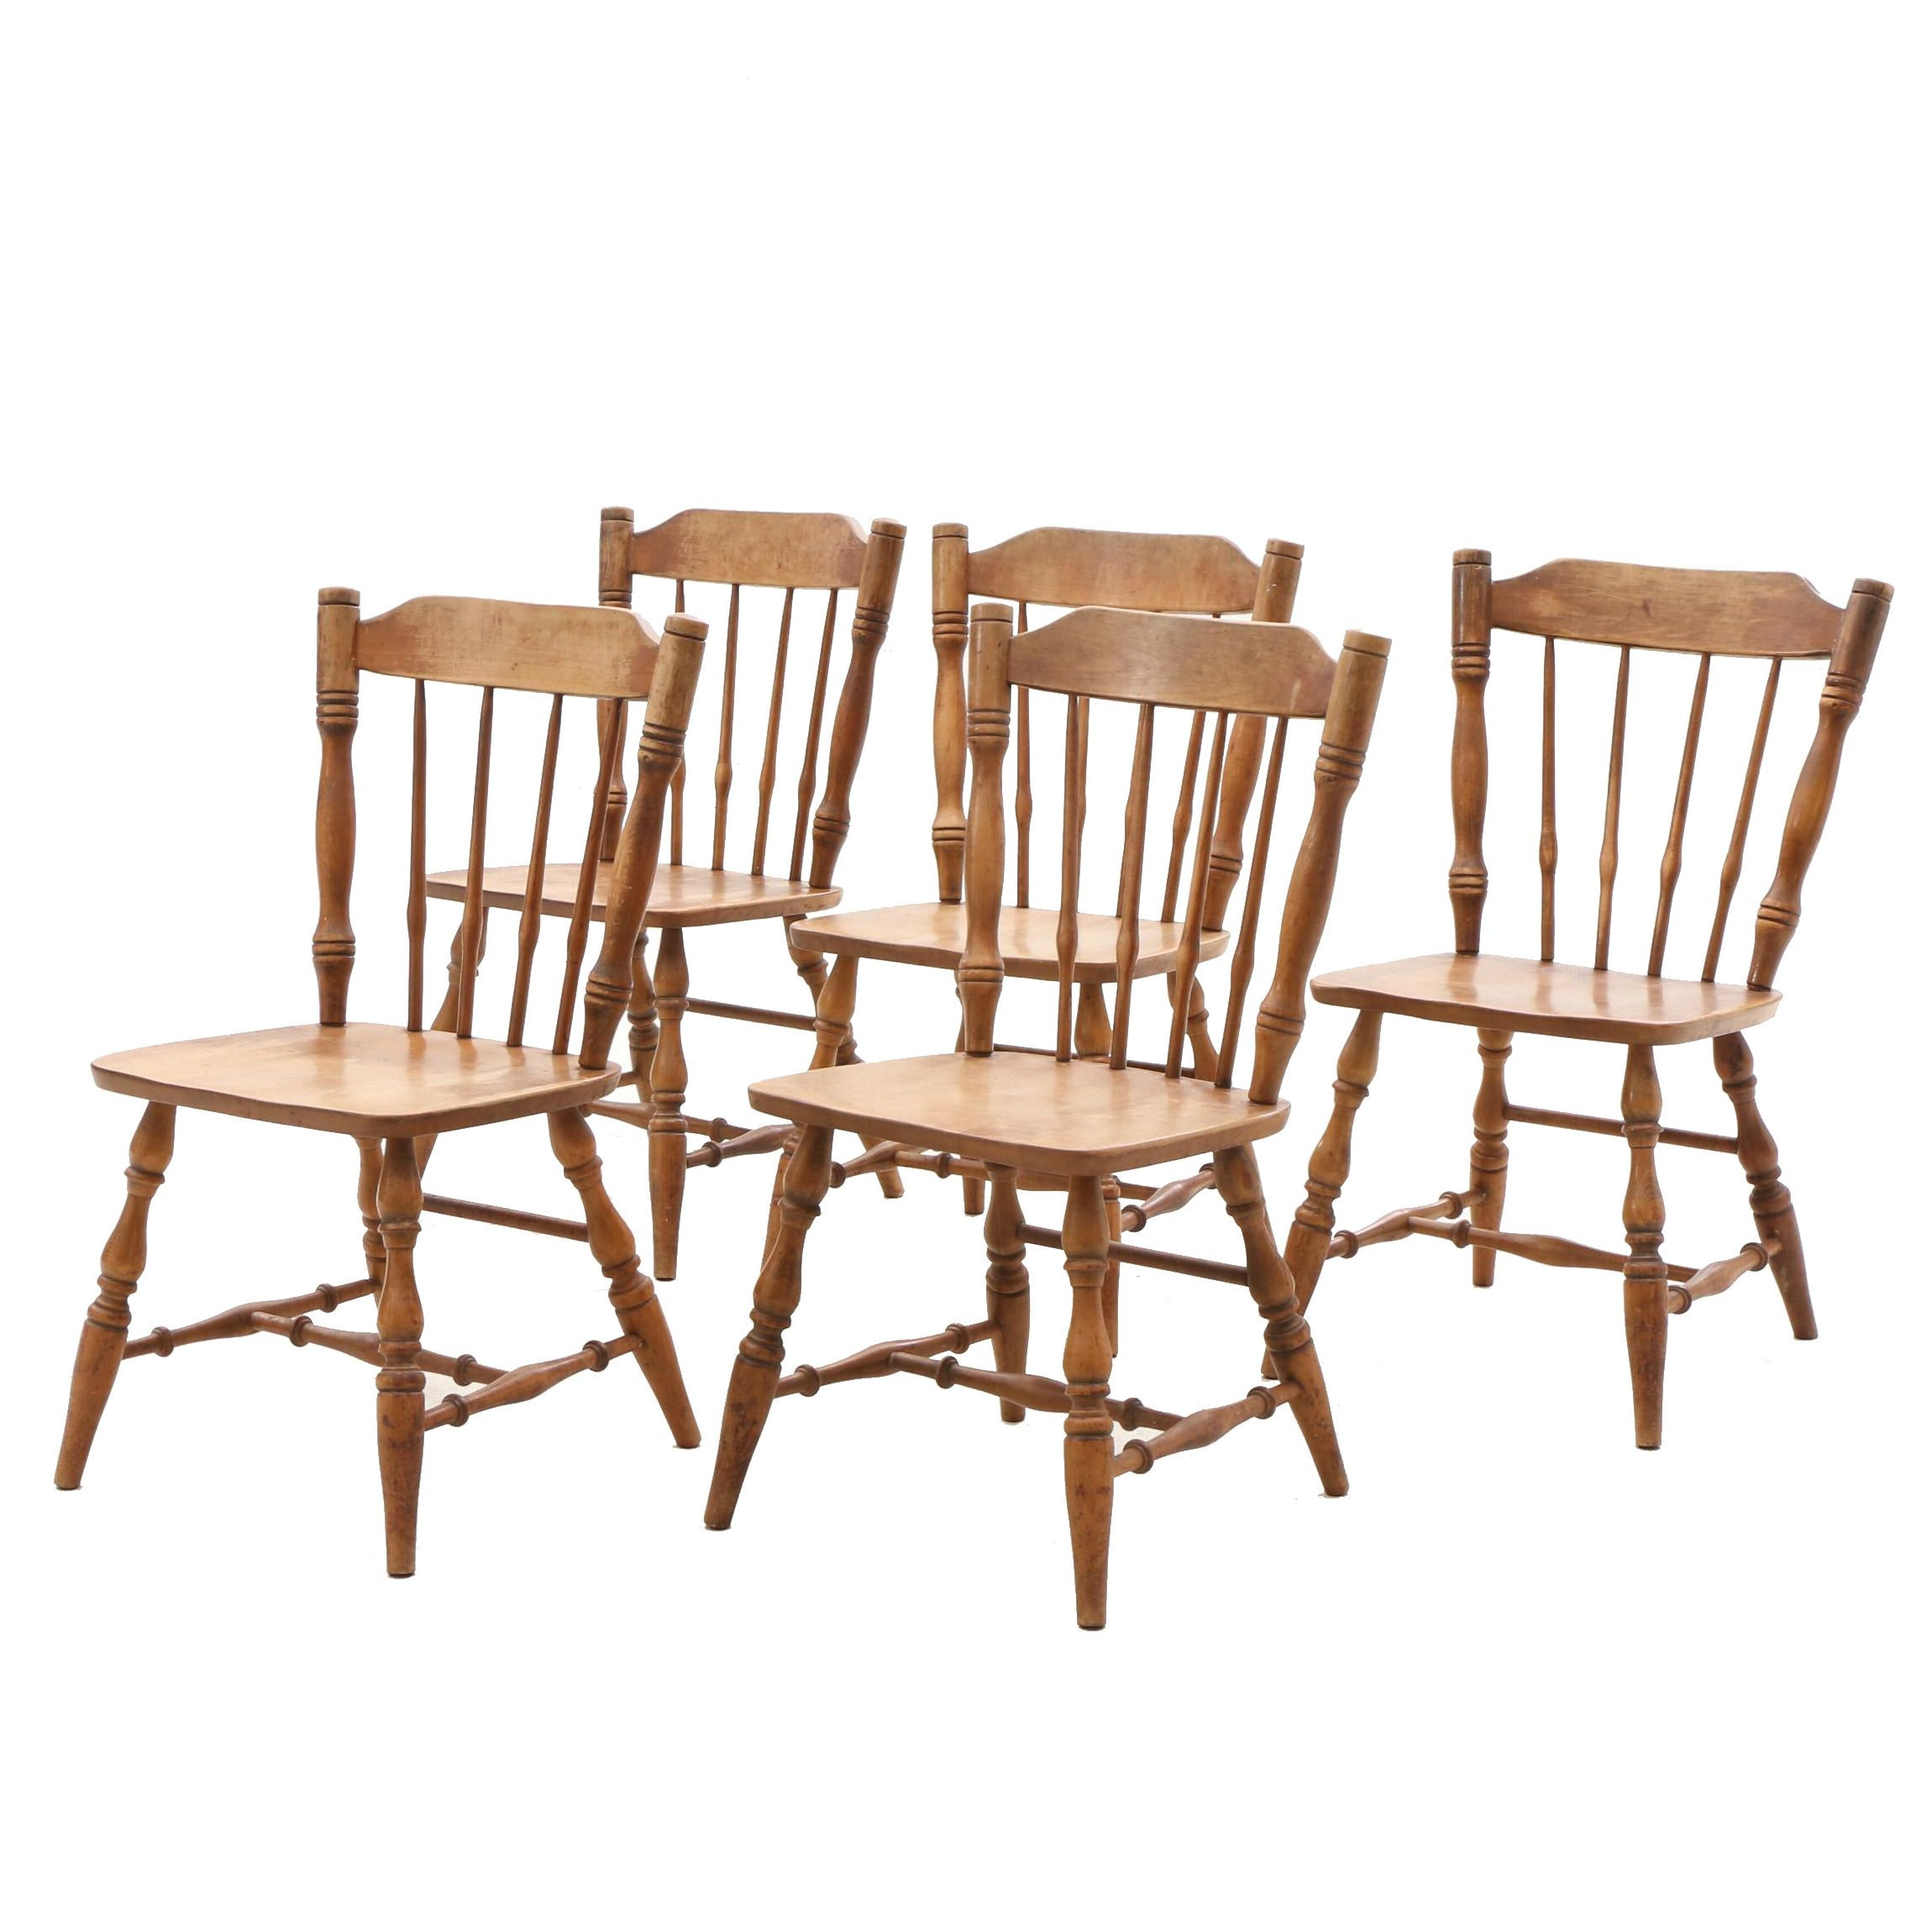 Windsor Style Dining Chairs in Maple